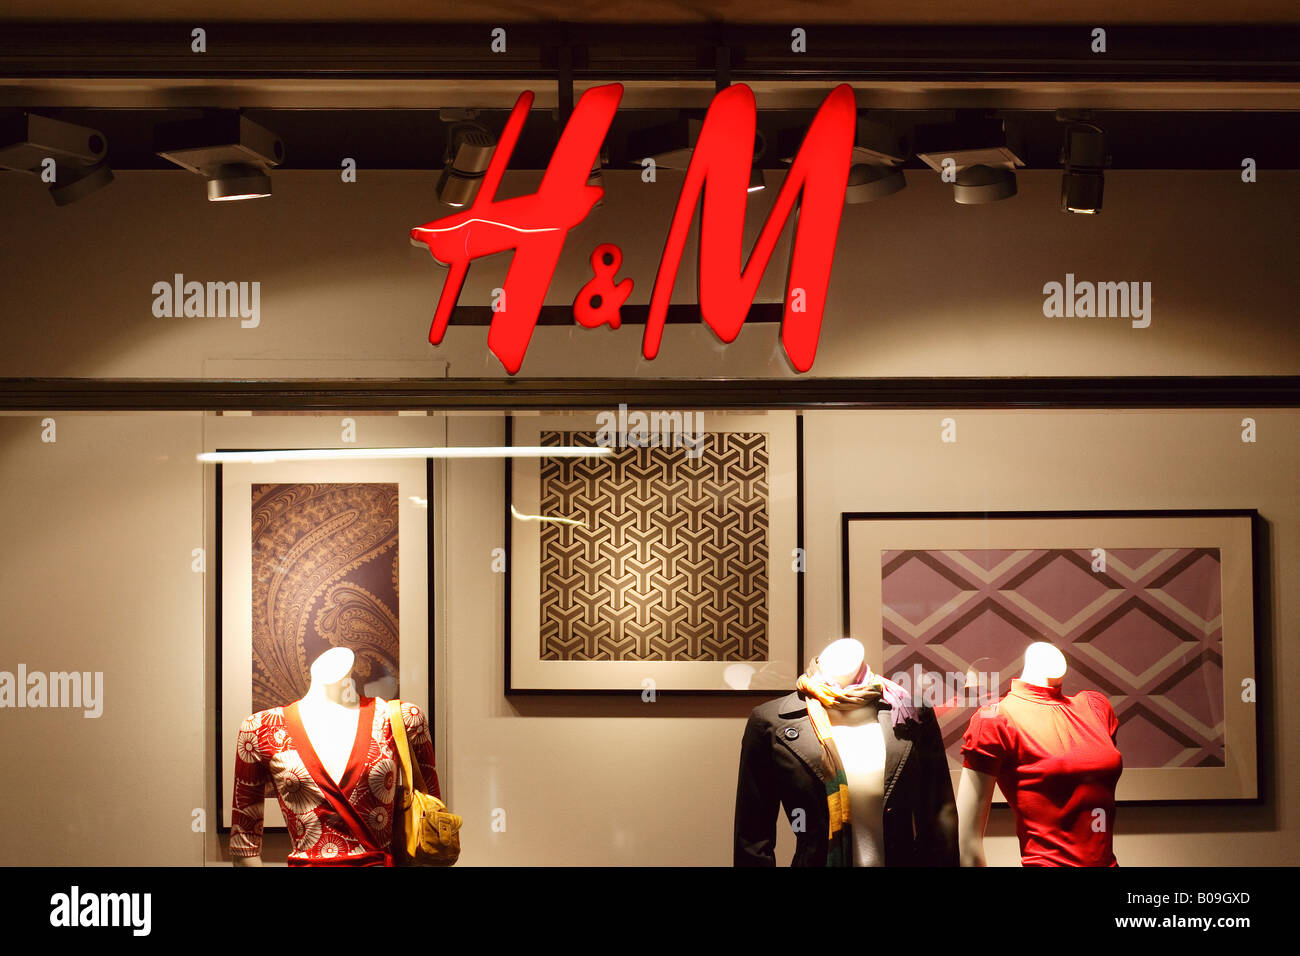 Window display of a H&M shop, Berlin, Germany - Stock Image